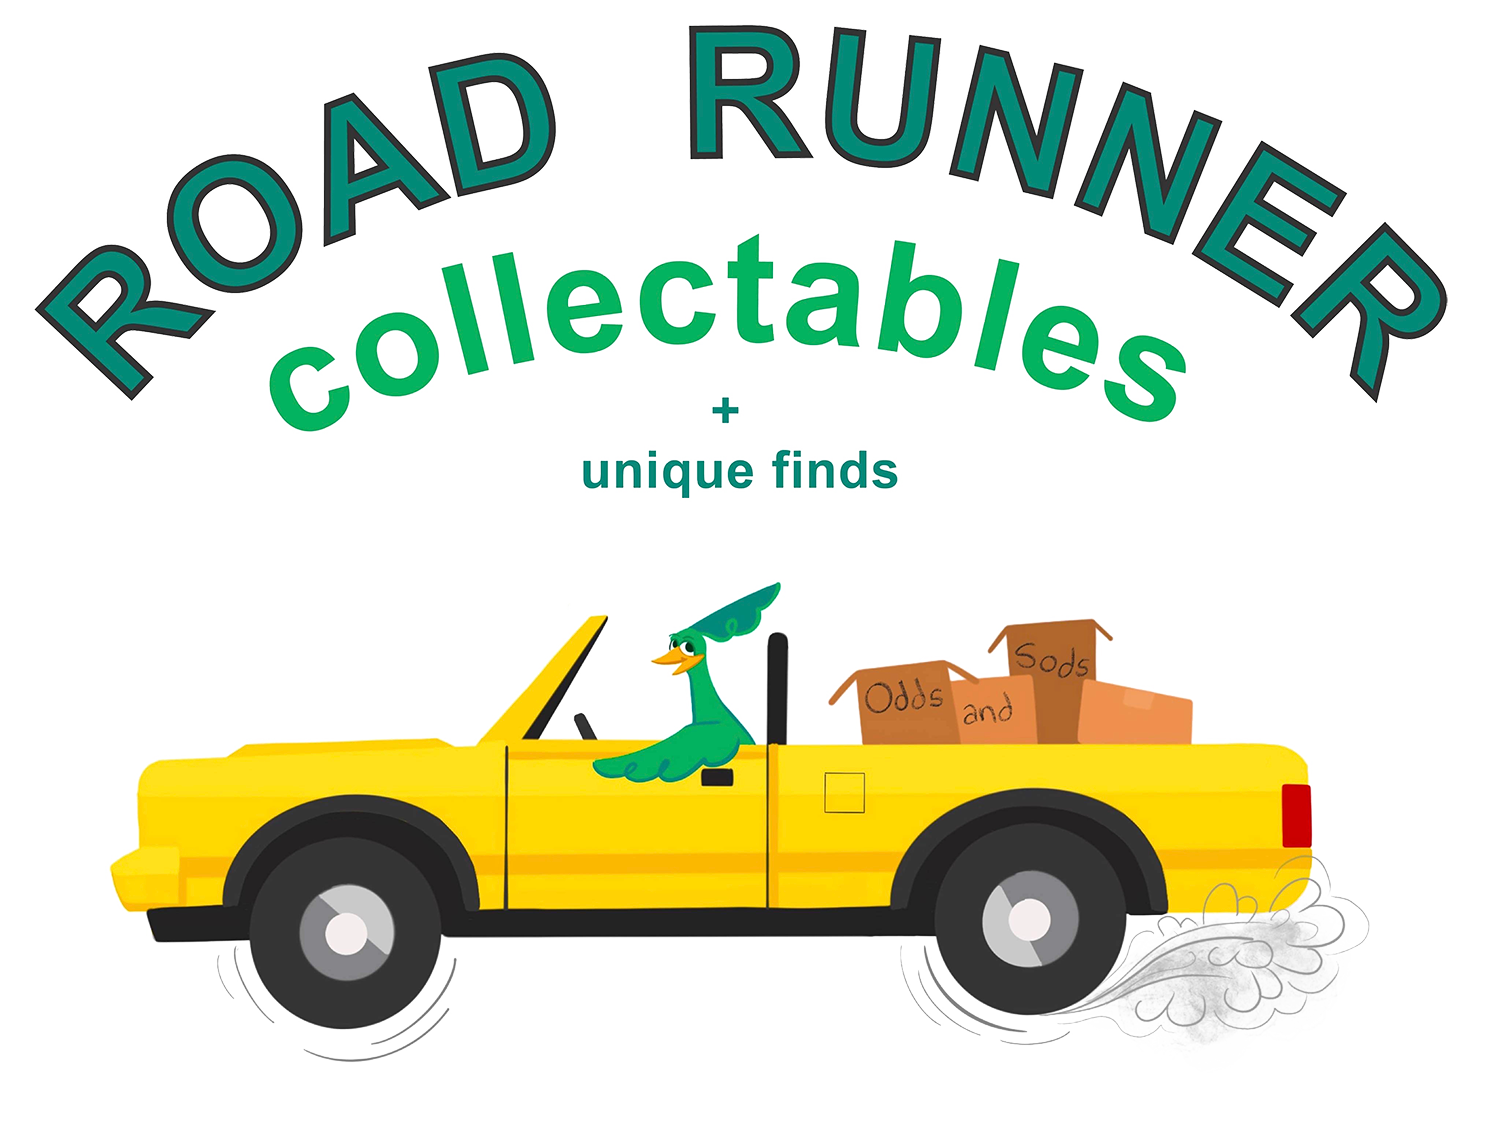 Roadrunner Collectables & Antiques